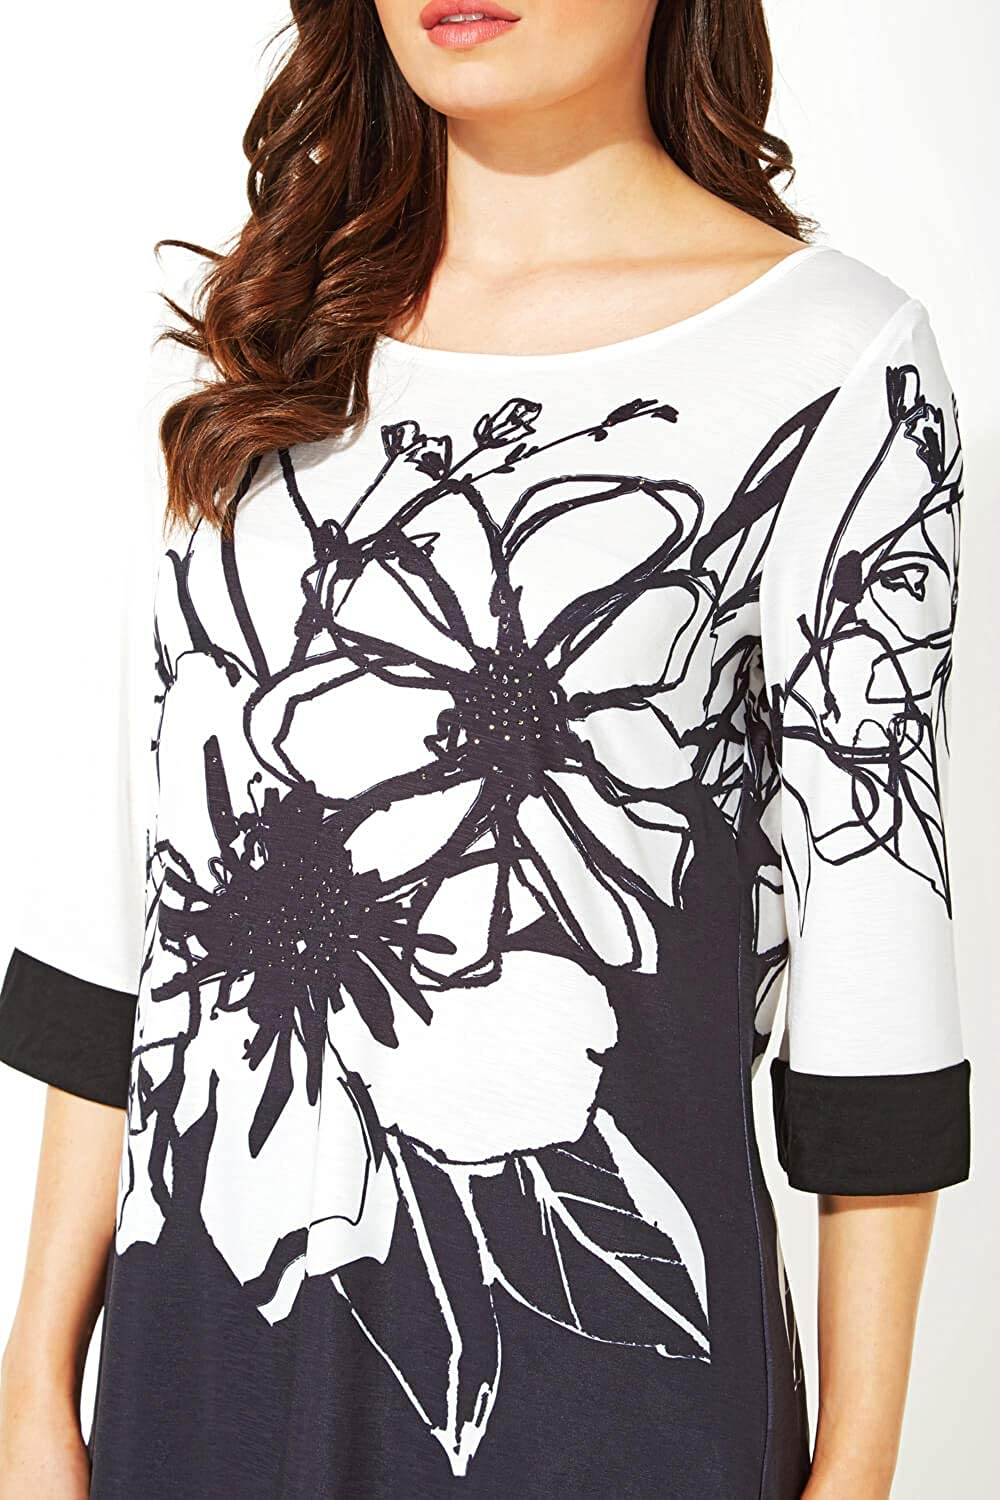 Ladies Everyday Smart Casual Work Round Neck 3//4 Length Sleeve Sequin Sparkle Embellished Jersey Stretch Comfy Party Tops Roman Originals Women Floral Print Contrast Top